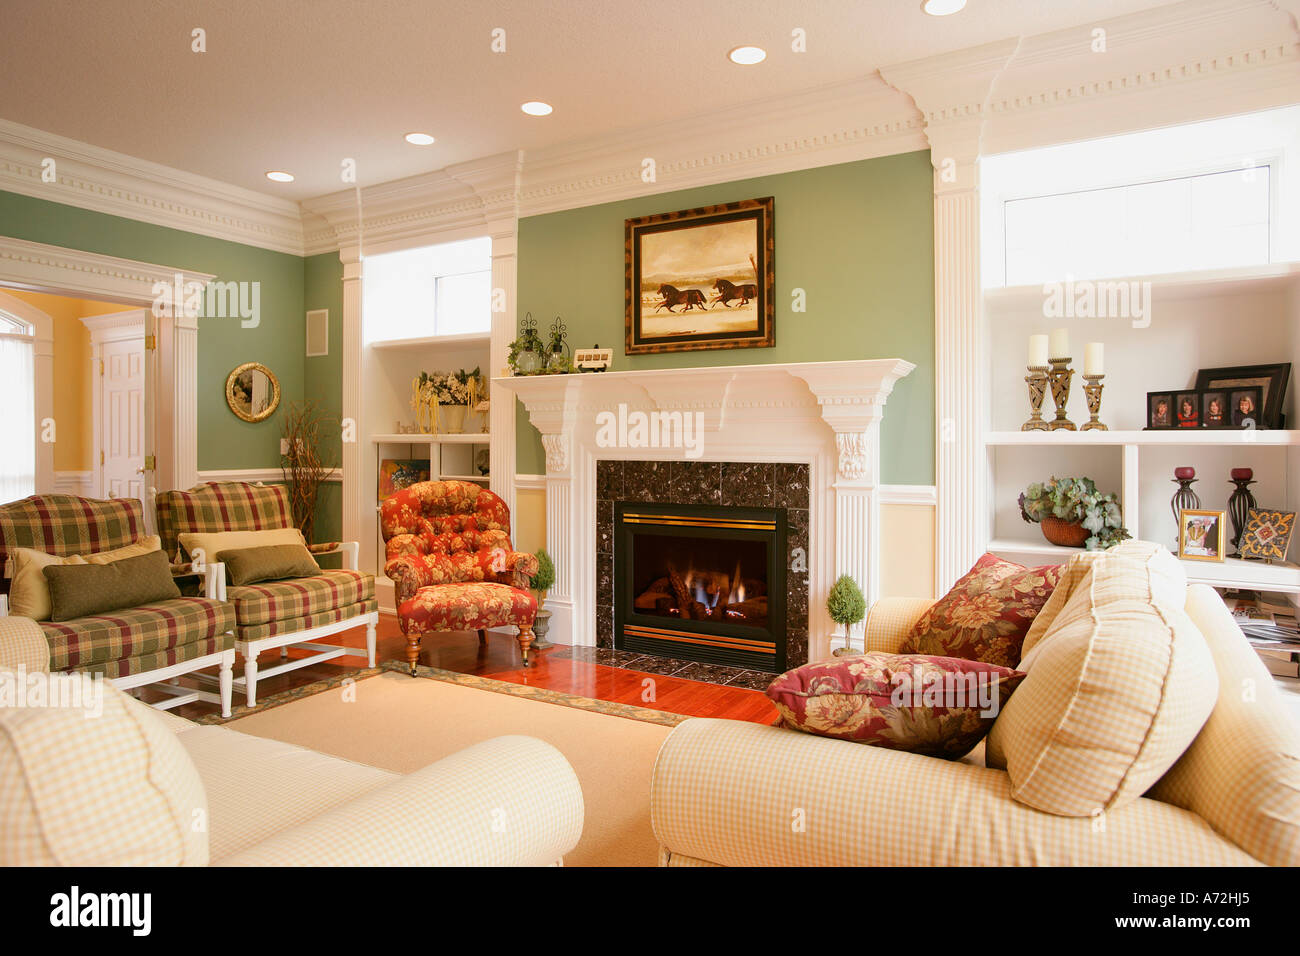 Stylish Sitting Room Stock Photo: 6687460 - Alamy